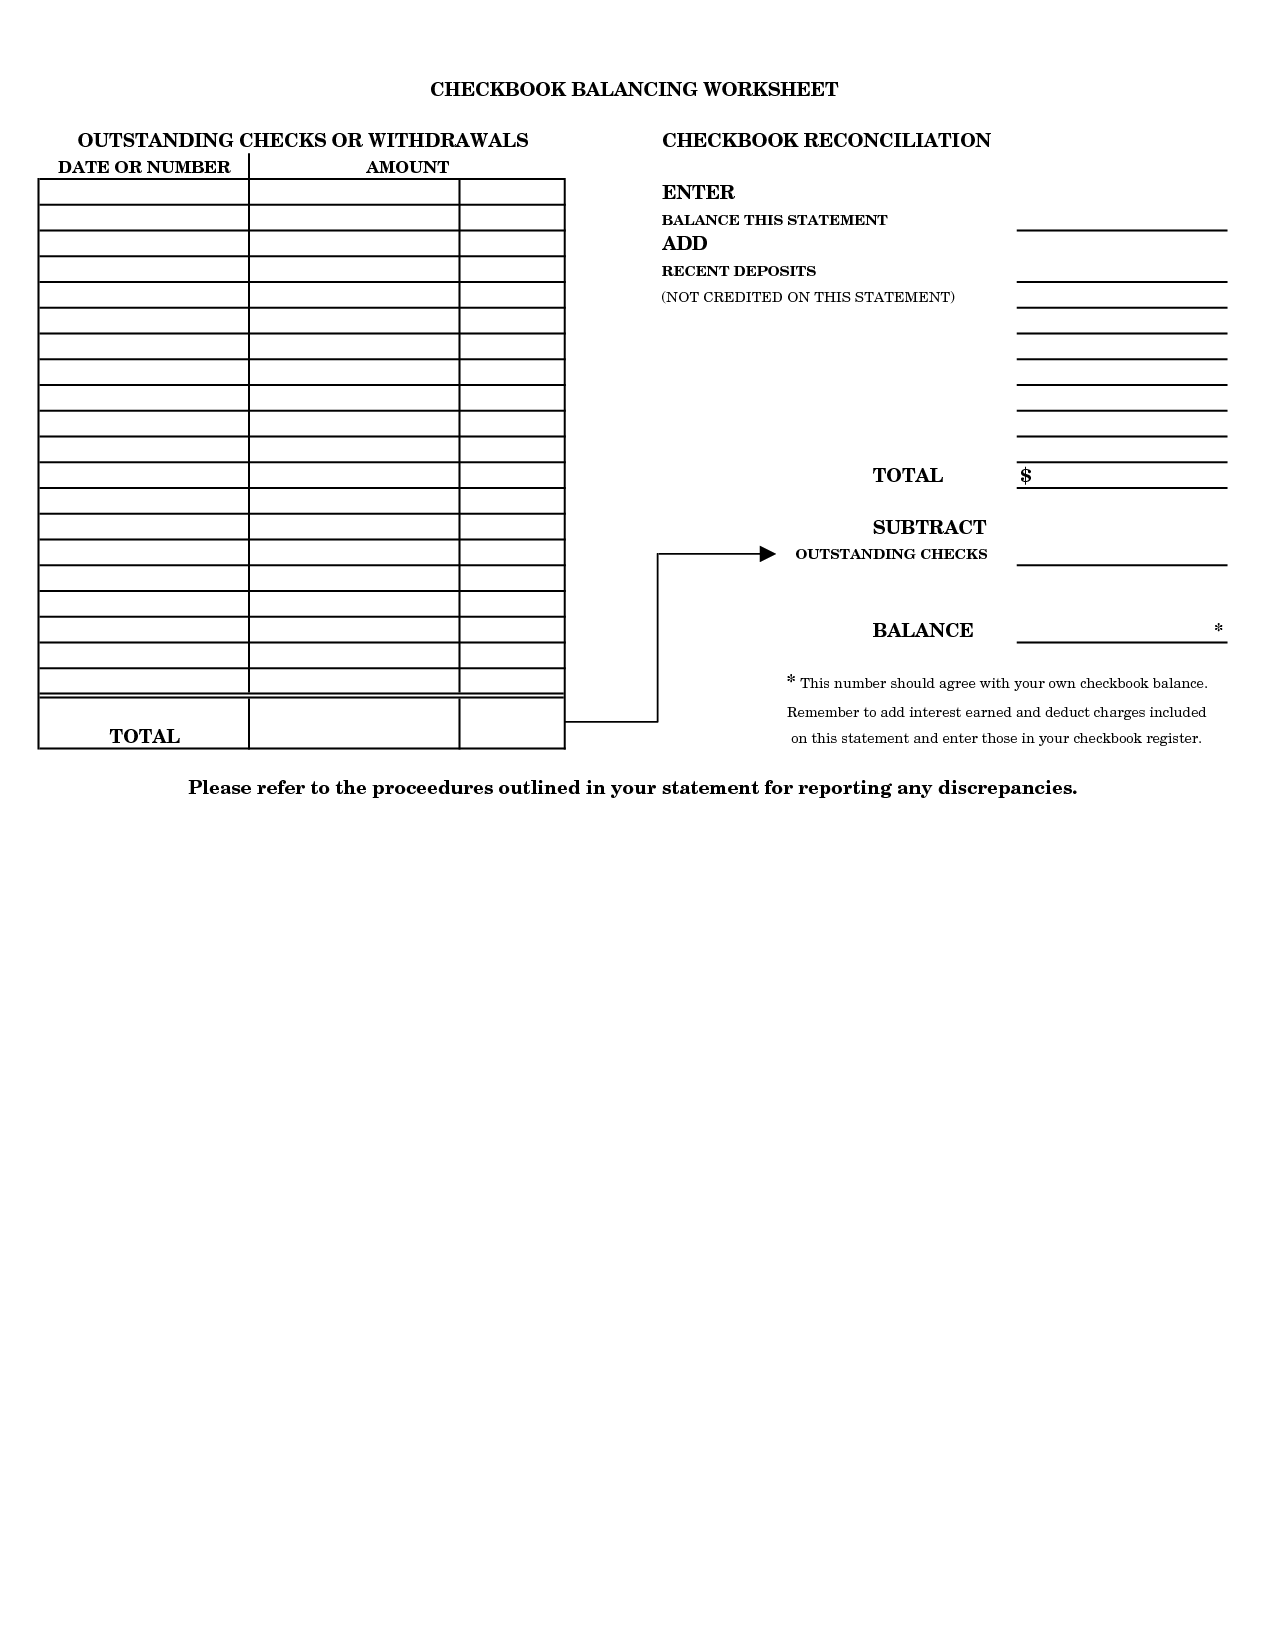 Printables Balancing Checkbook Worksheet balancing checkbook worksheet versaldobip worksheets versaldobip